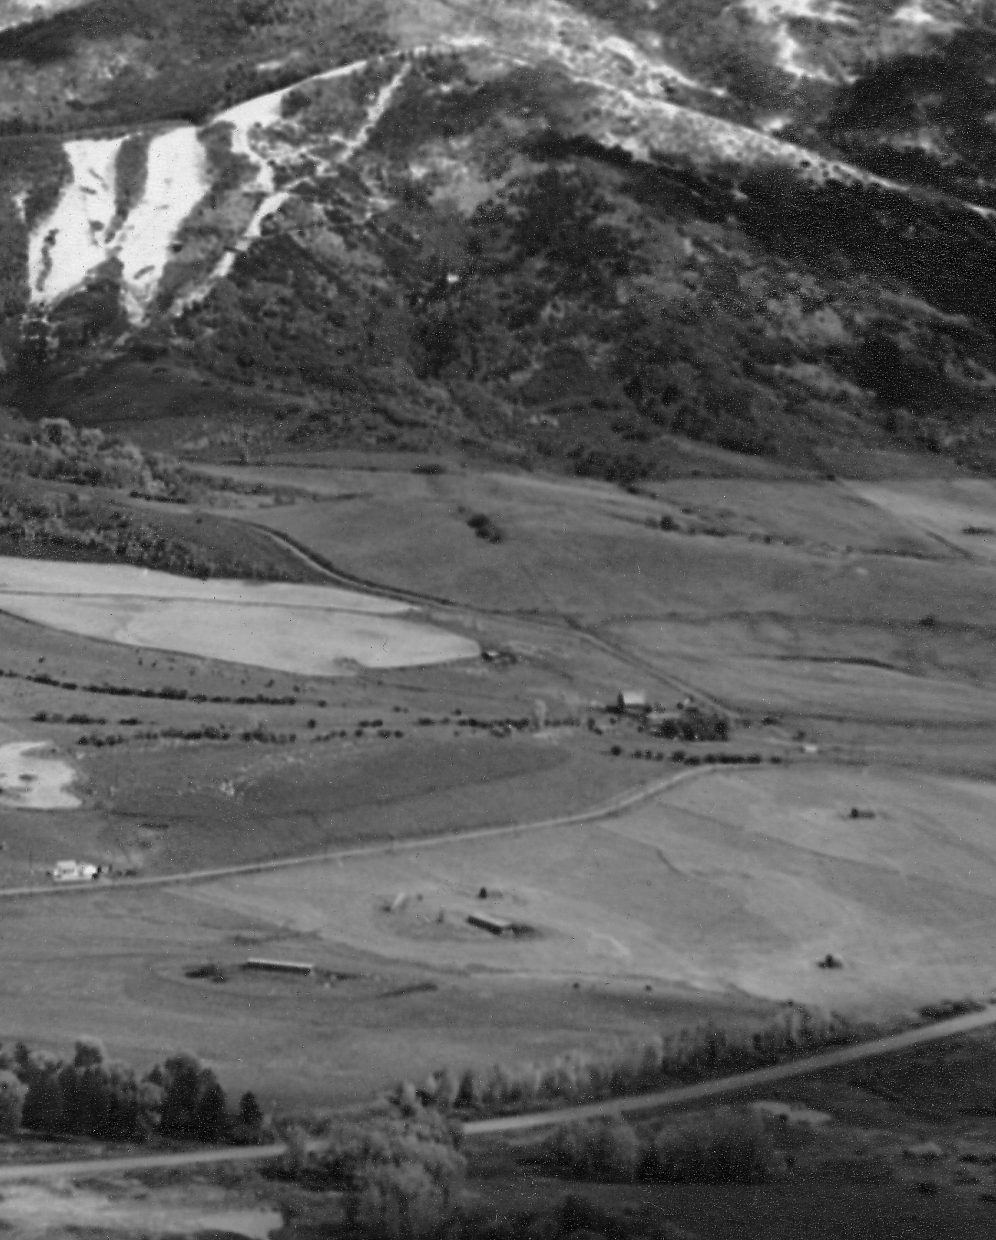 The historic Arnold Barn stands in a much quainter Yampa Valley in this photo taken in the 1960s by Jim Temple from Emerald Mountain.